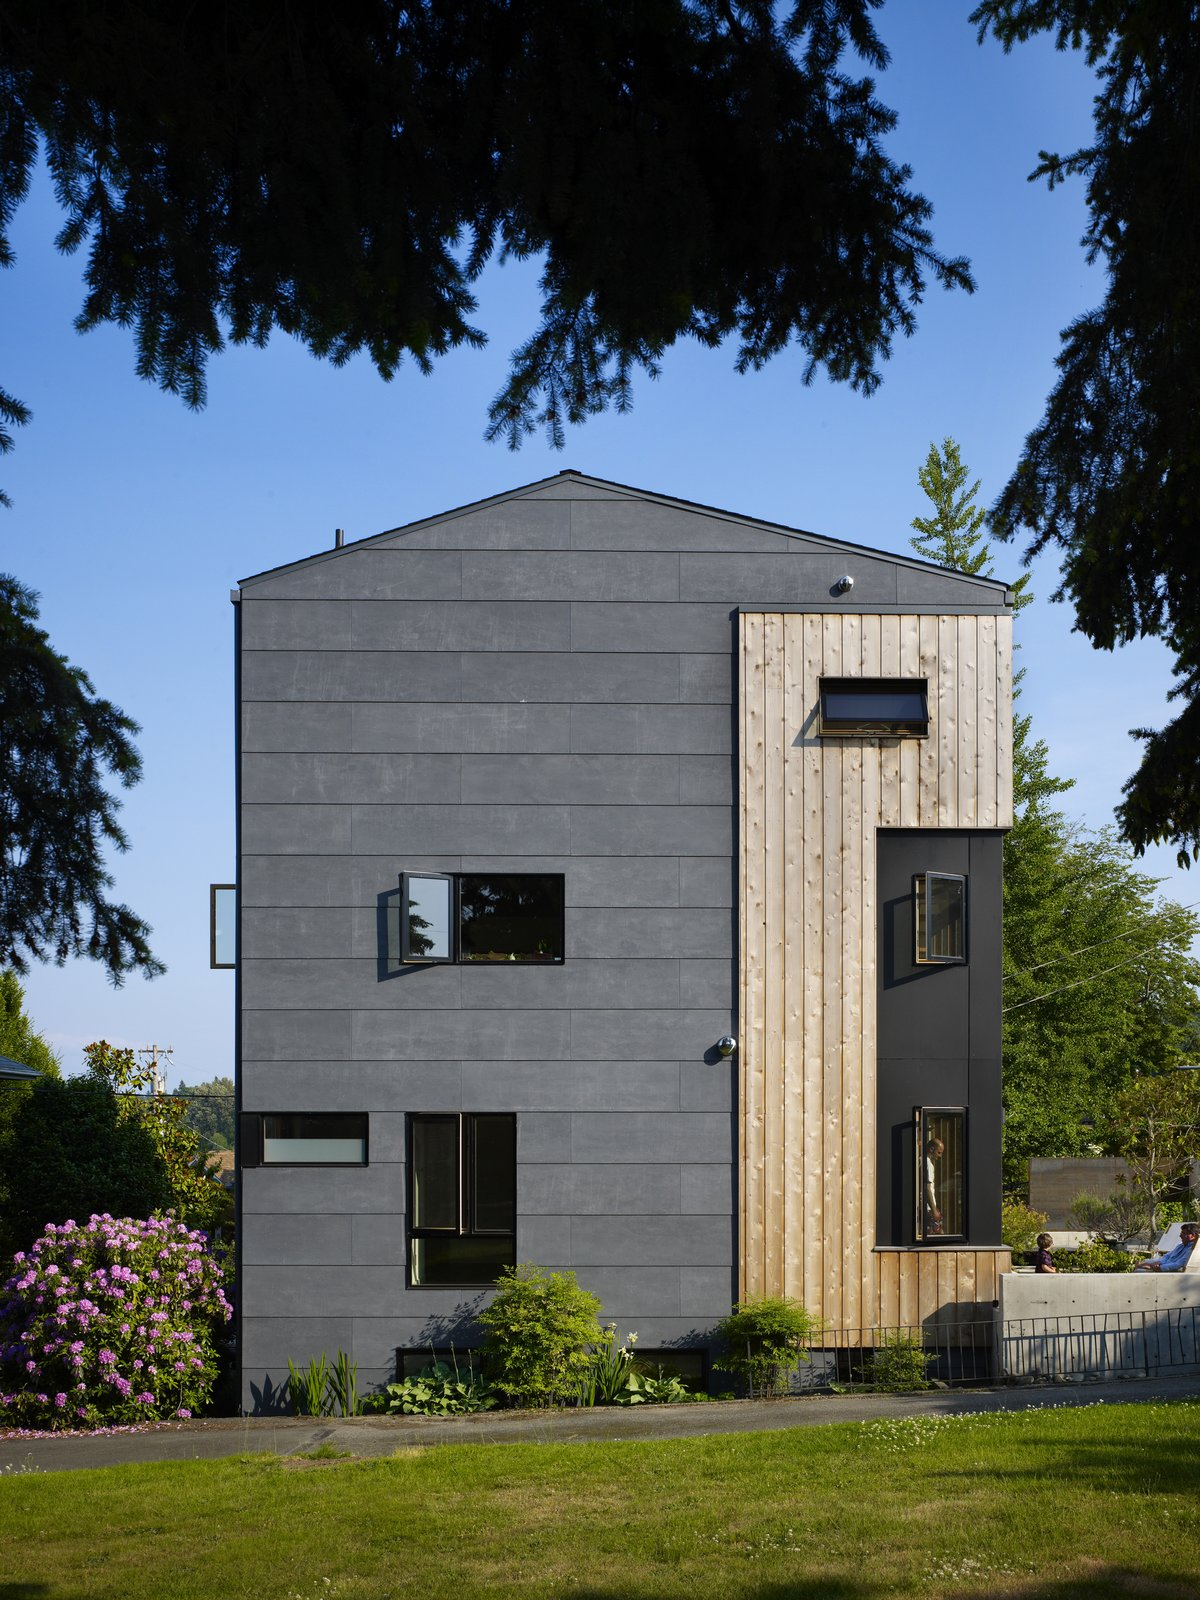 Building Elevation  Lobster Boat House by chadbourne + doss architects